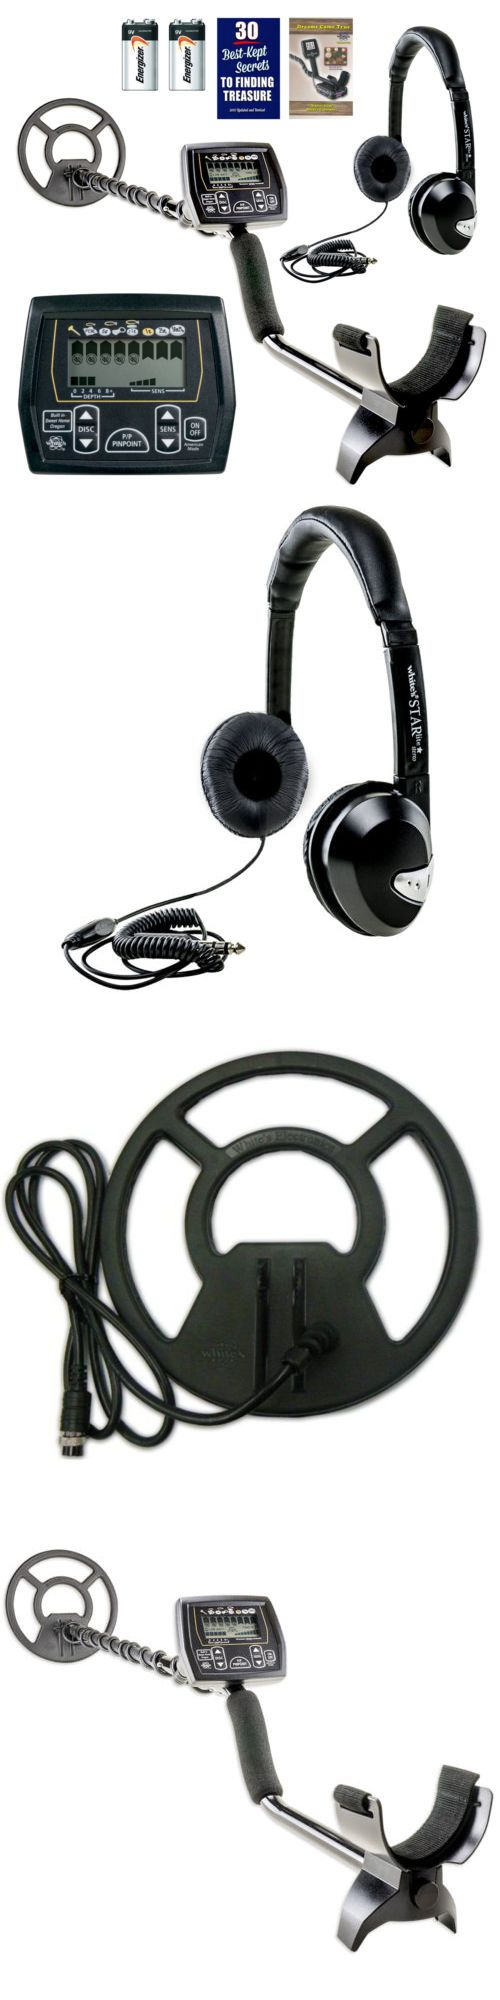 Metal Detectors: Whites Coinmaster Metal Detector W 9 Waterproof Search Coil And Headphones -> BUY IT NOW ONLY: $179 on eBay!